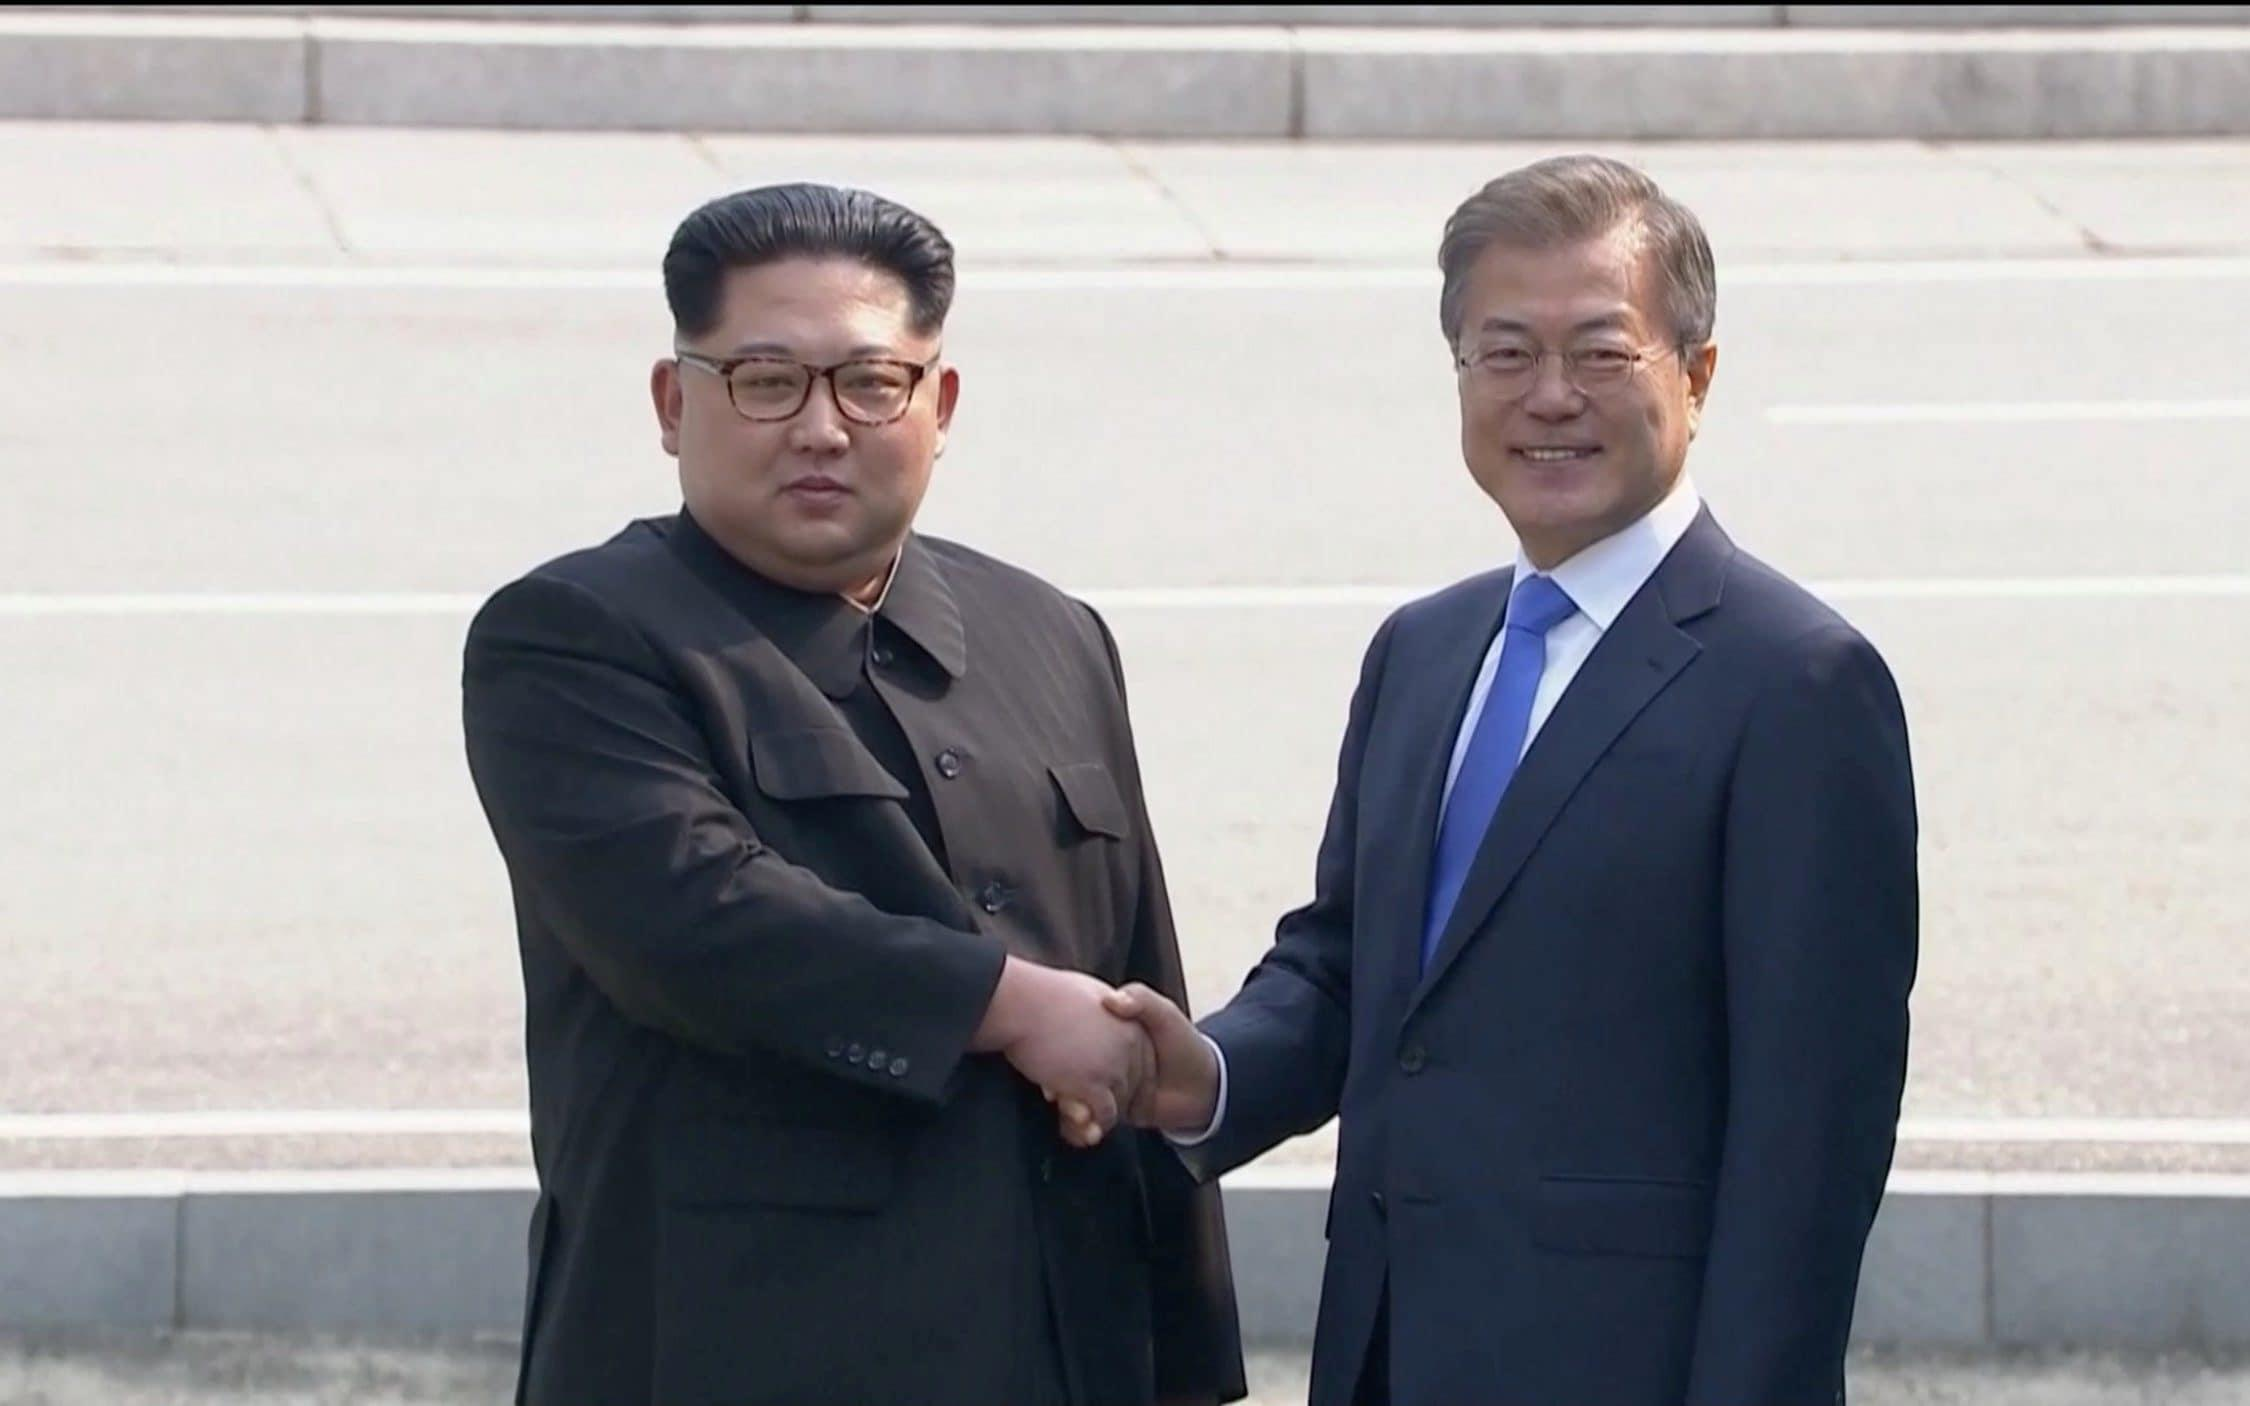 Kim Jong-un hails 'era of peace' as North Korean leader holds historic summit with President Moon Jae-in - live updates